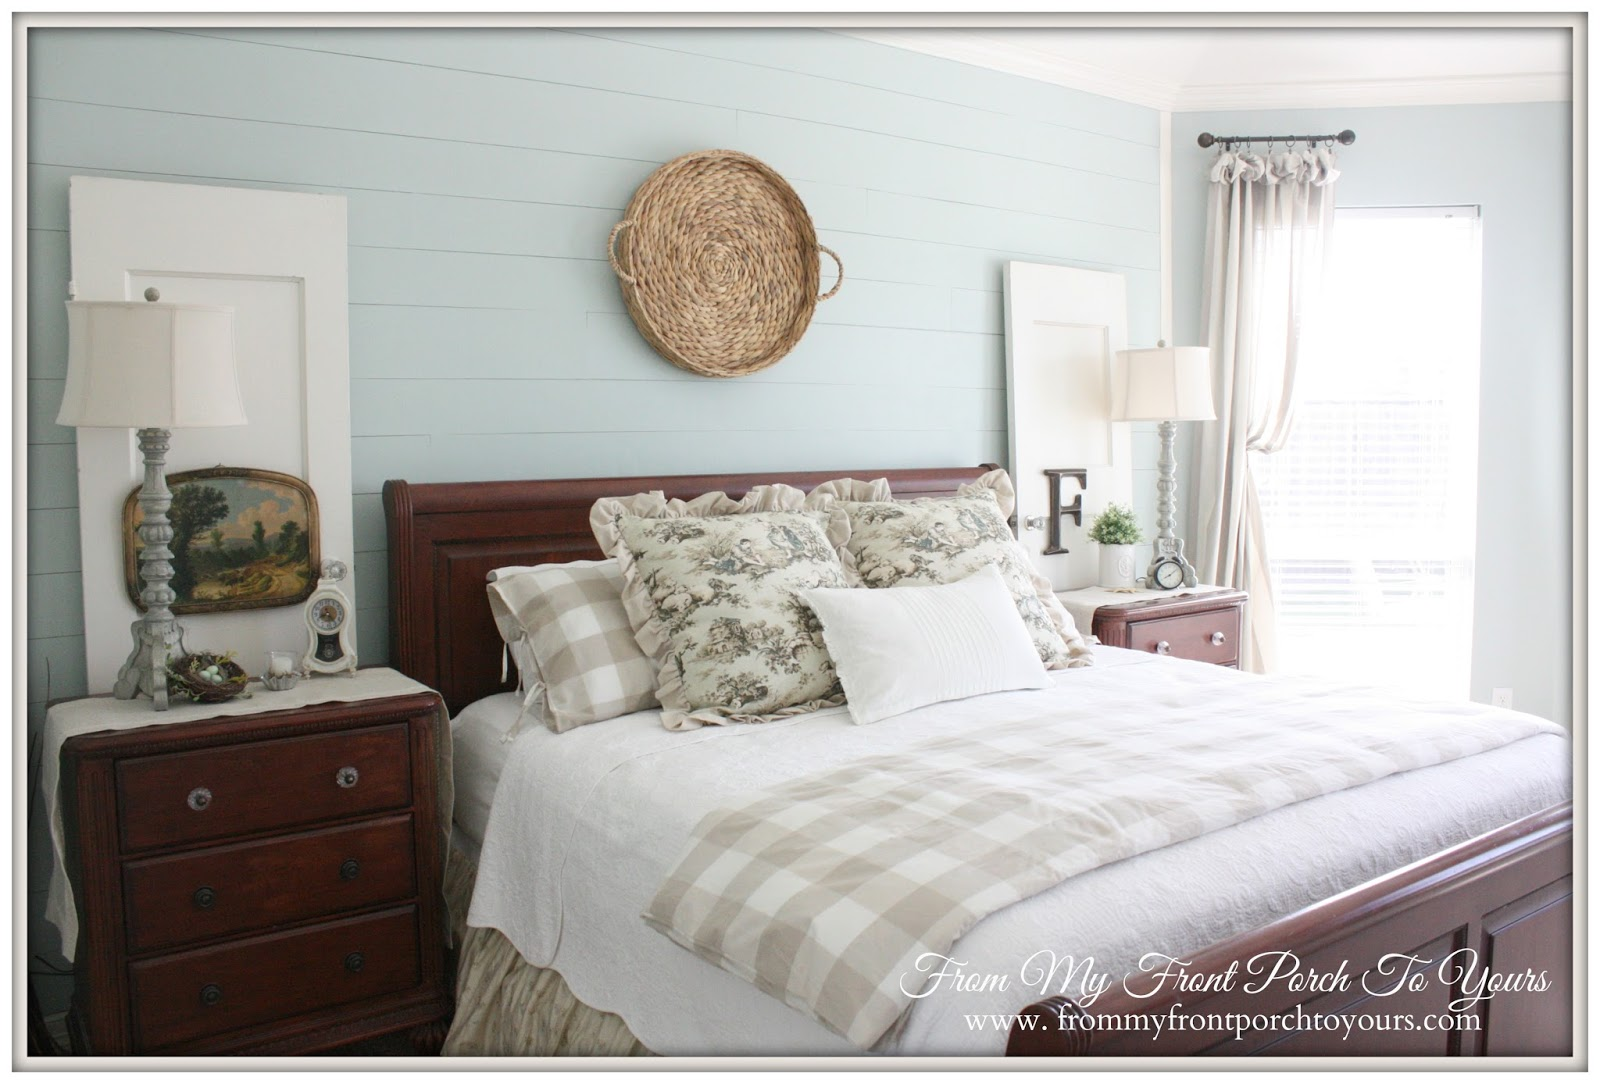 French Farmhouse Master Bedroom Buffalo Check Bedding Toile From My Front Porch To